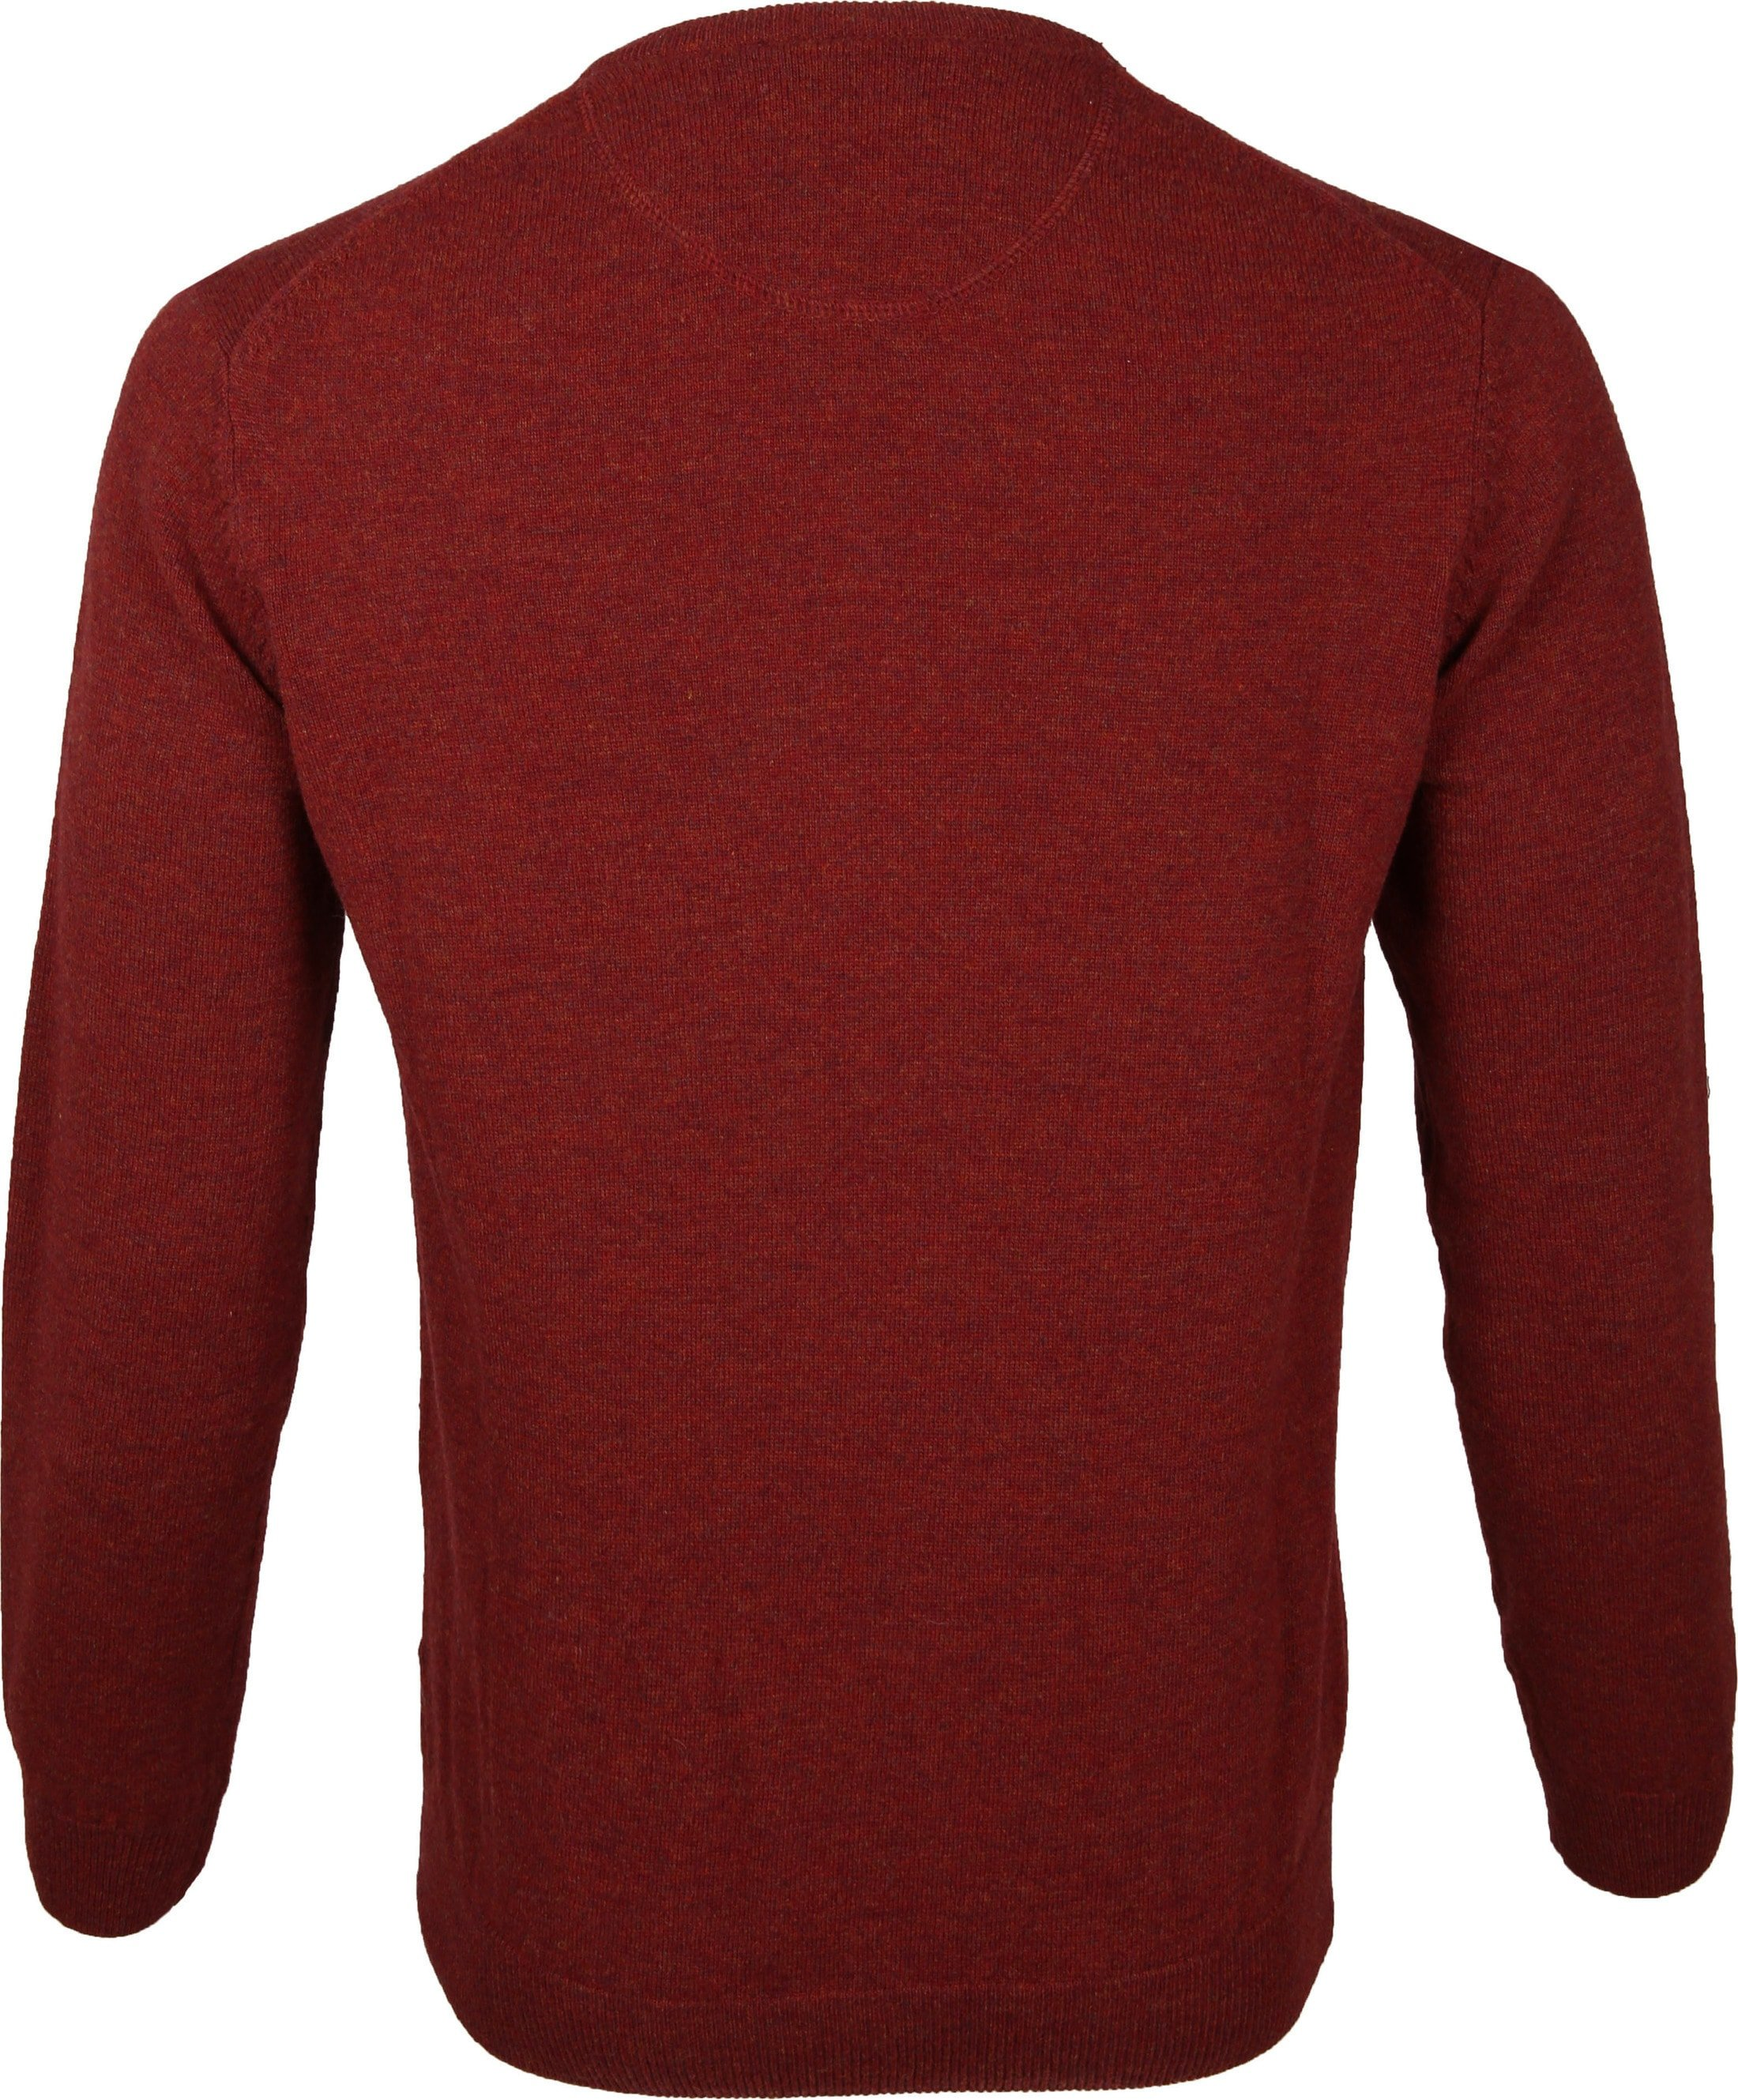 Suitable Pullover Lambswool V-Neck Dark Red foto 2